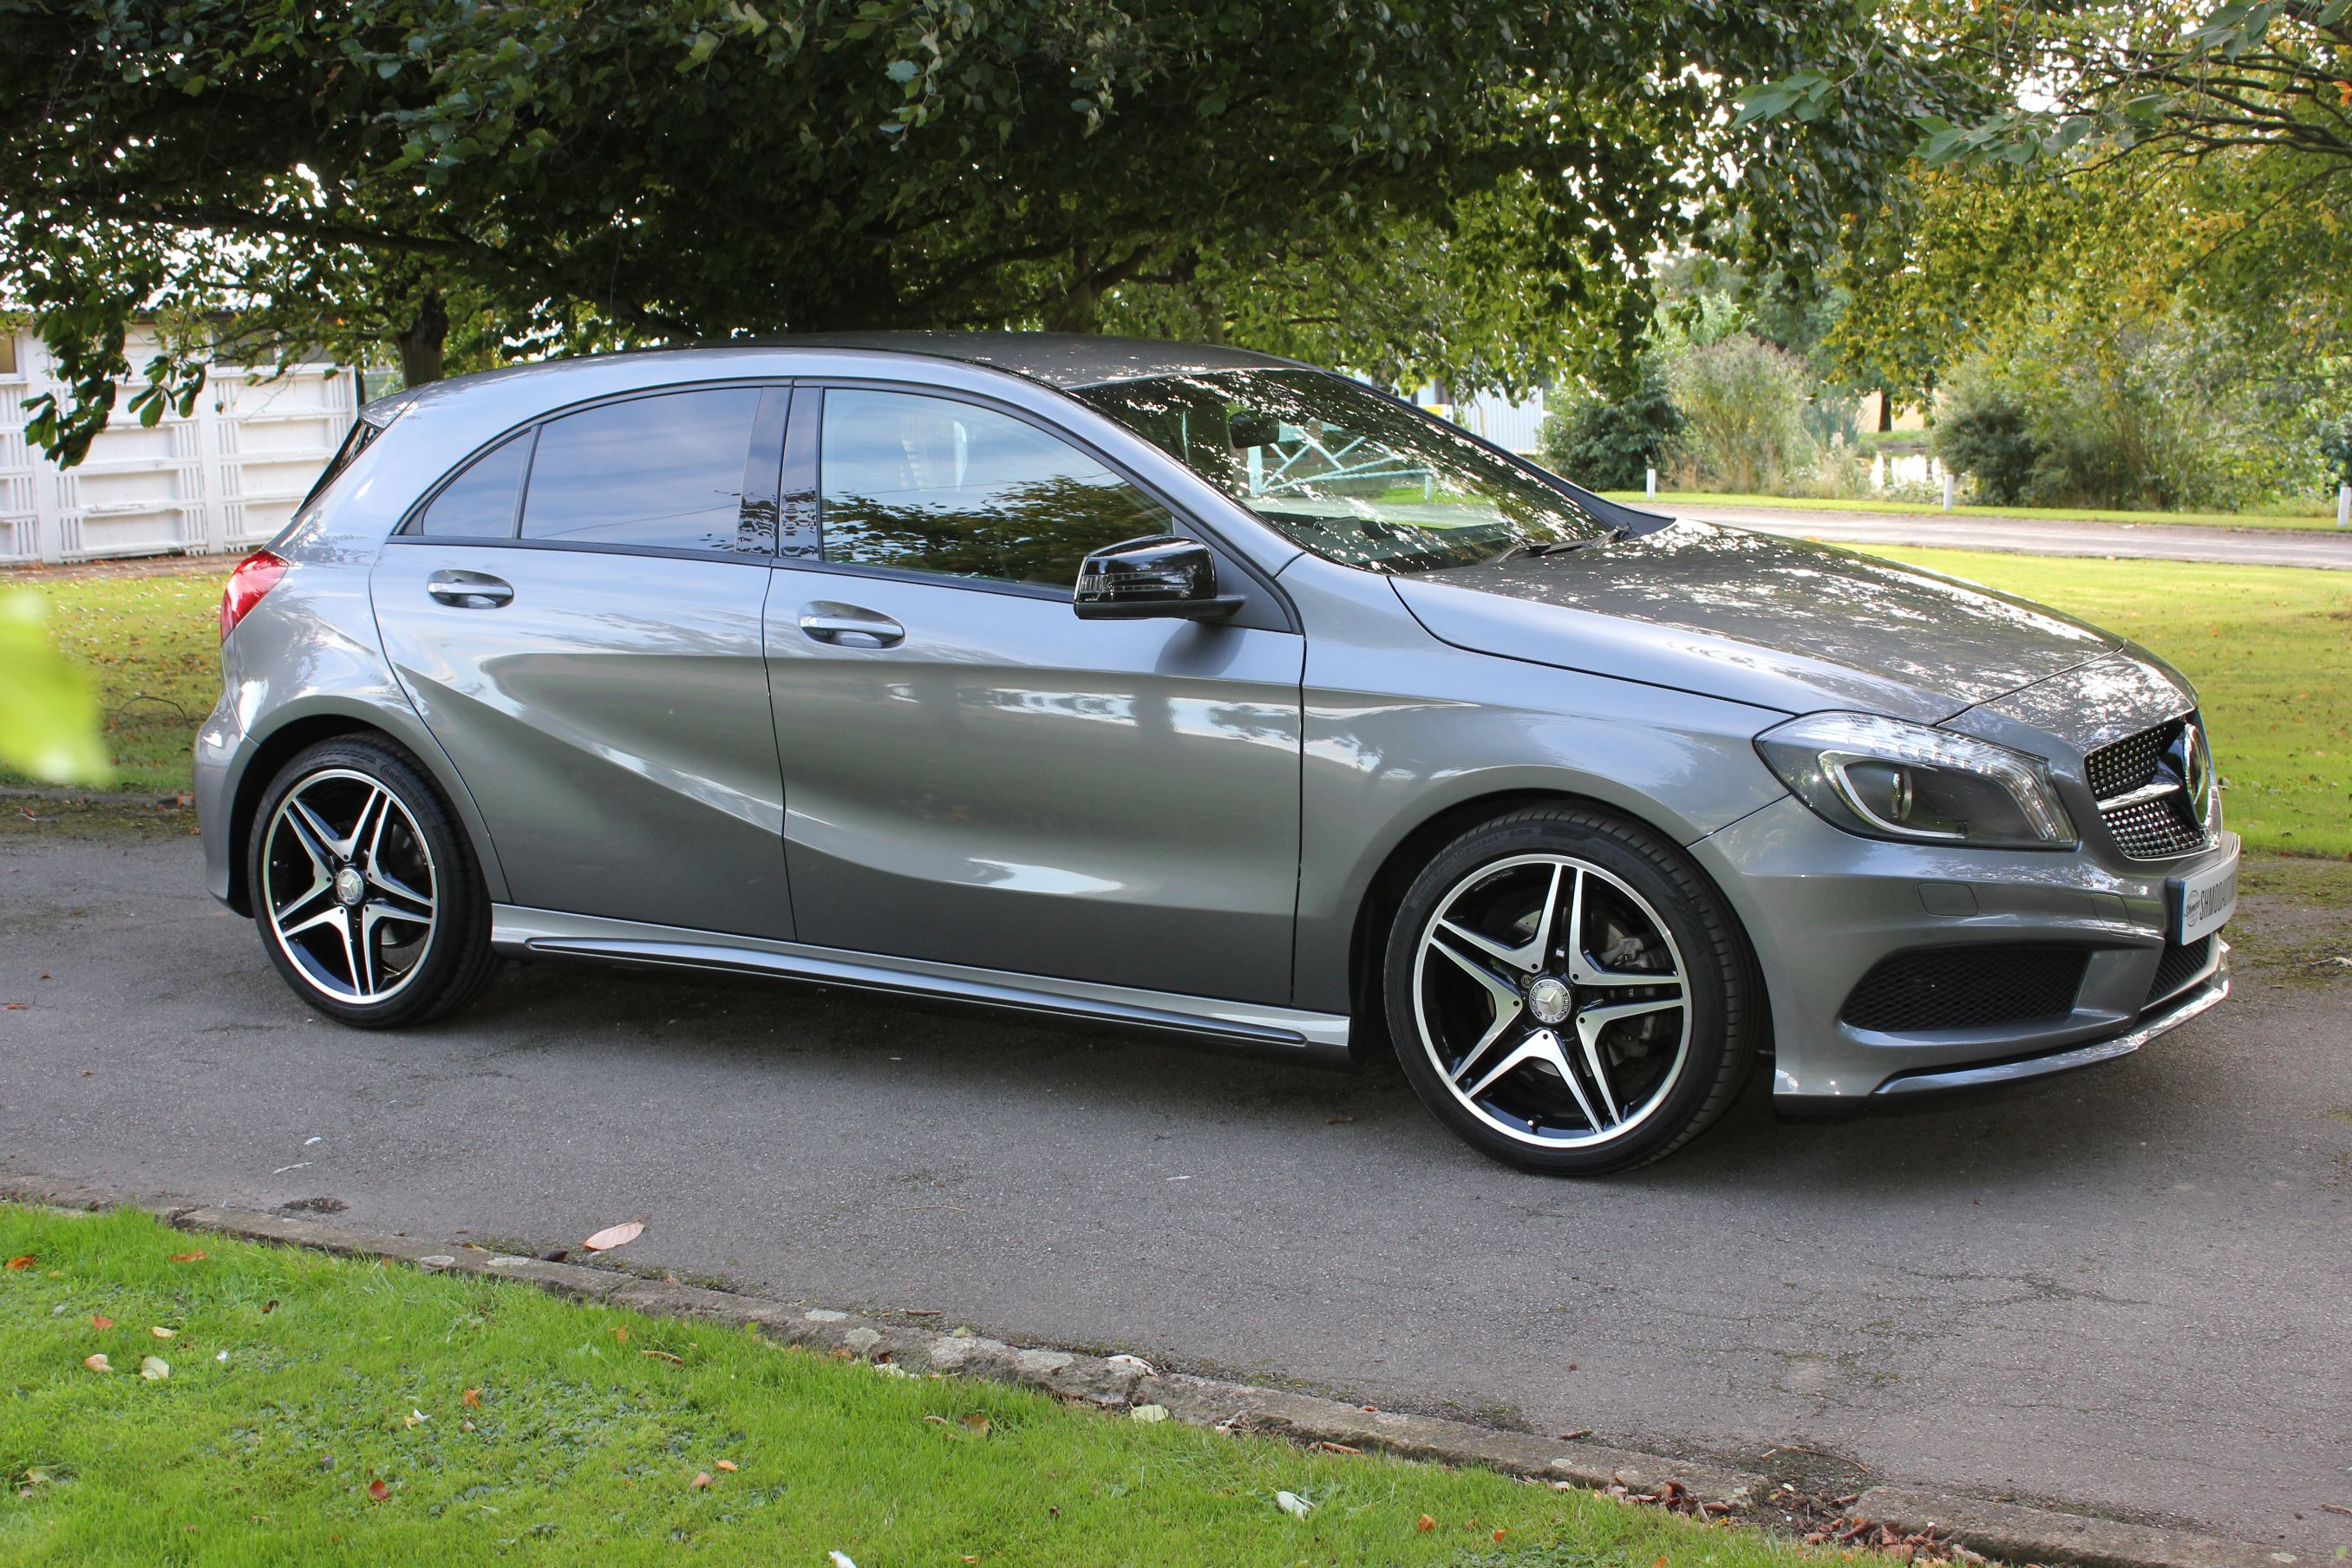 mercedes a class a200 cdi blue efficiency amg sport 136bhp shmoo automotive shmoo automotive. Black Bedroom Furniture Sets. Home Design Ideas